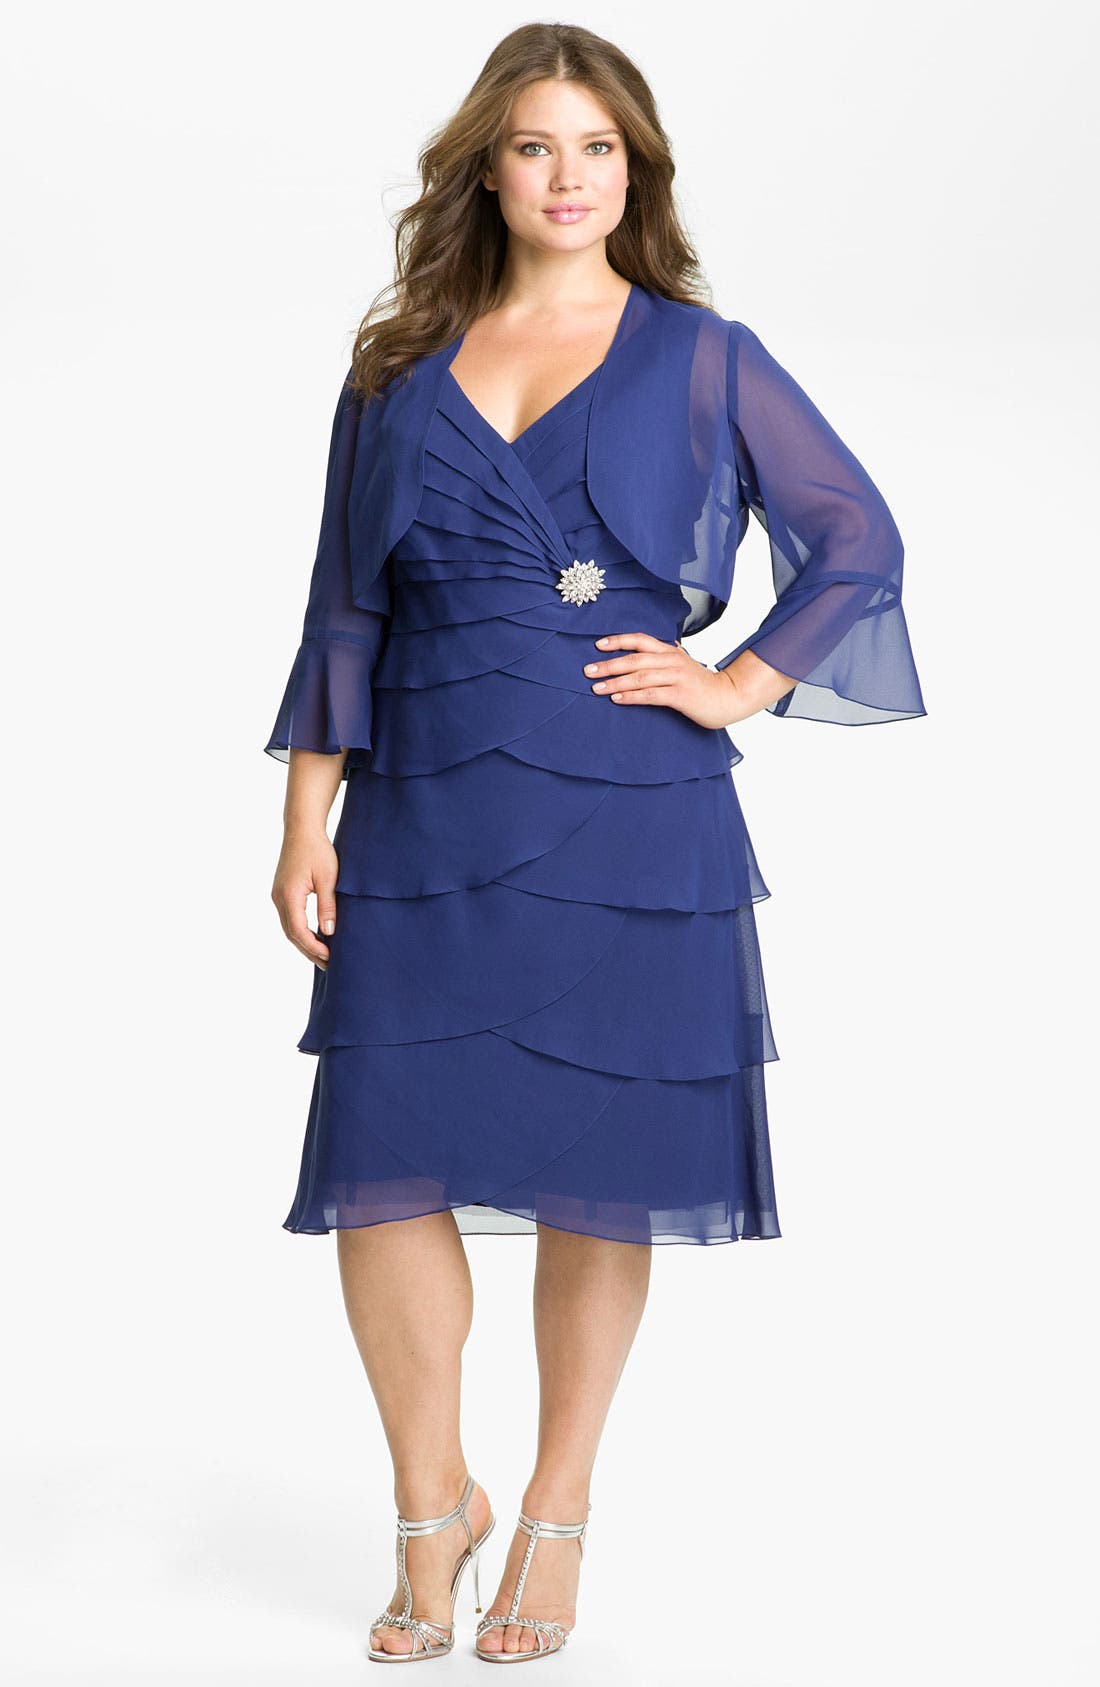 Alternate Image 1 Selected - Alex Evenings Tiered Chiffon Dress & Bolero (Plus)